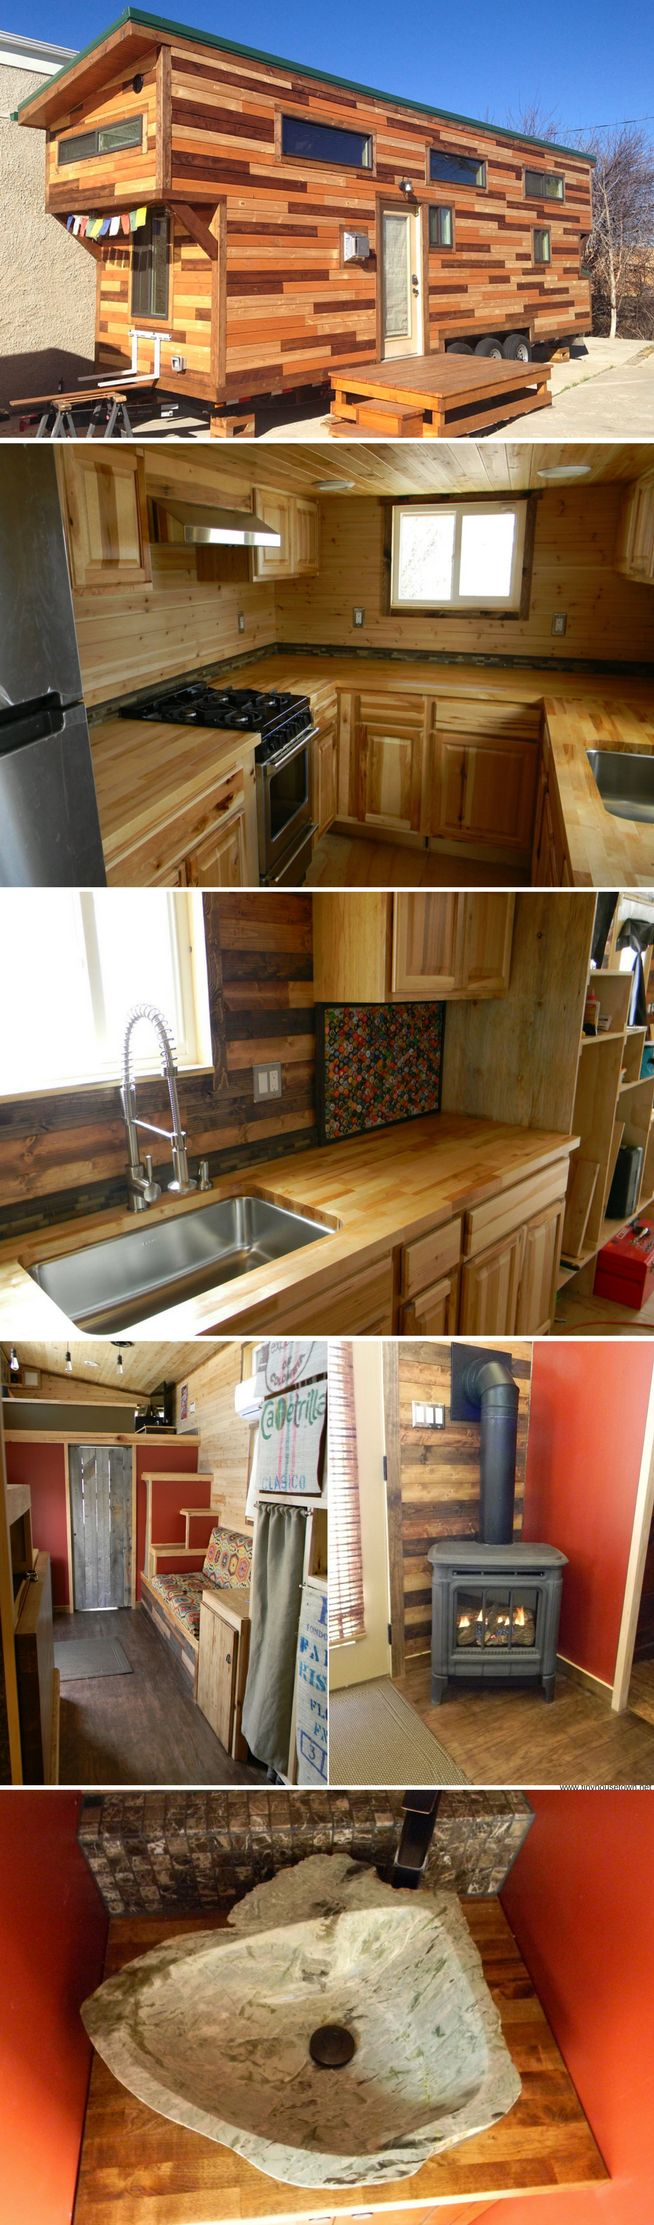 The Grand tiny house (345 sq ft)